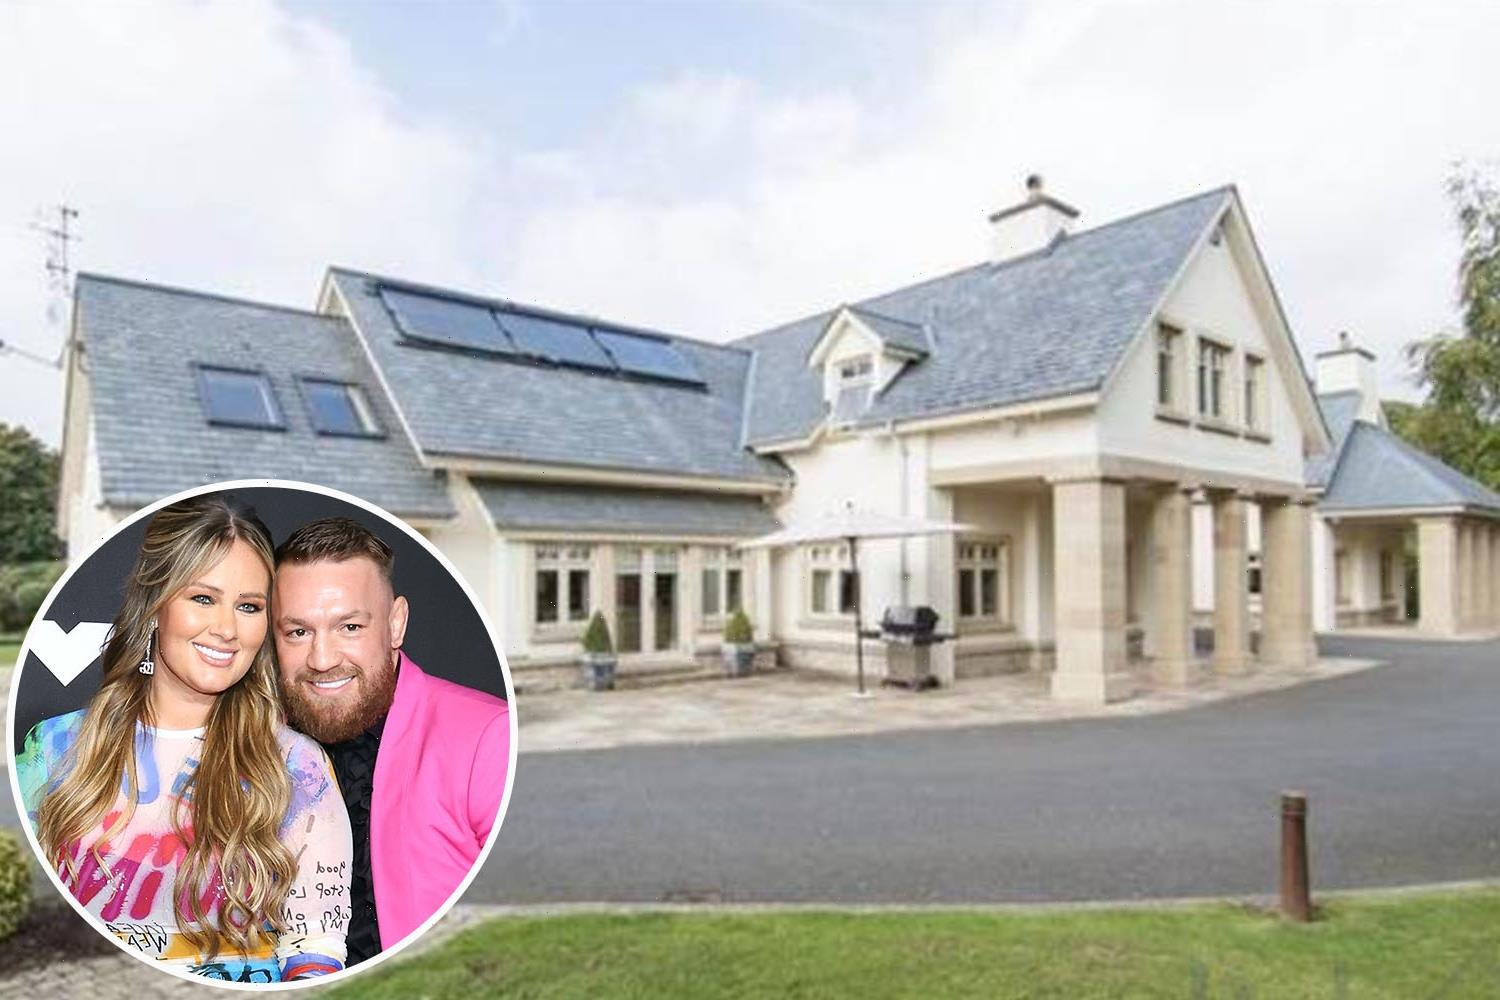 McGregor's plans to extend £2.5m Ireland home with underground car park and gym rejected as 'inappropriate' by council